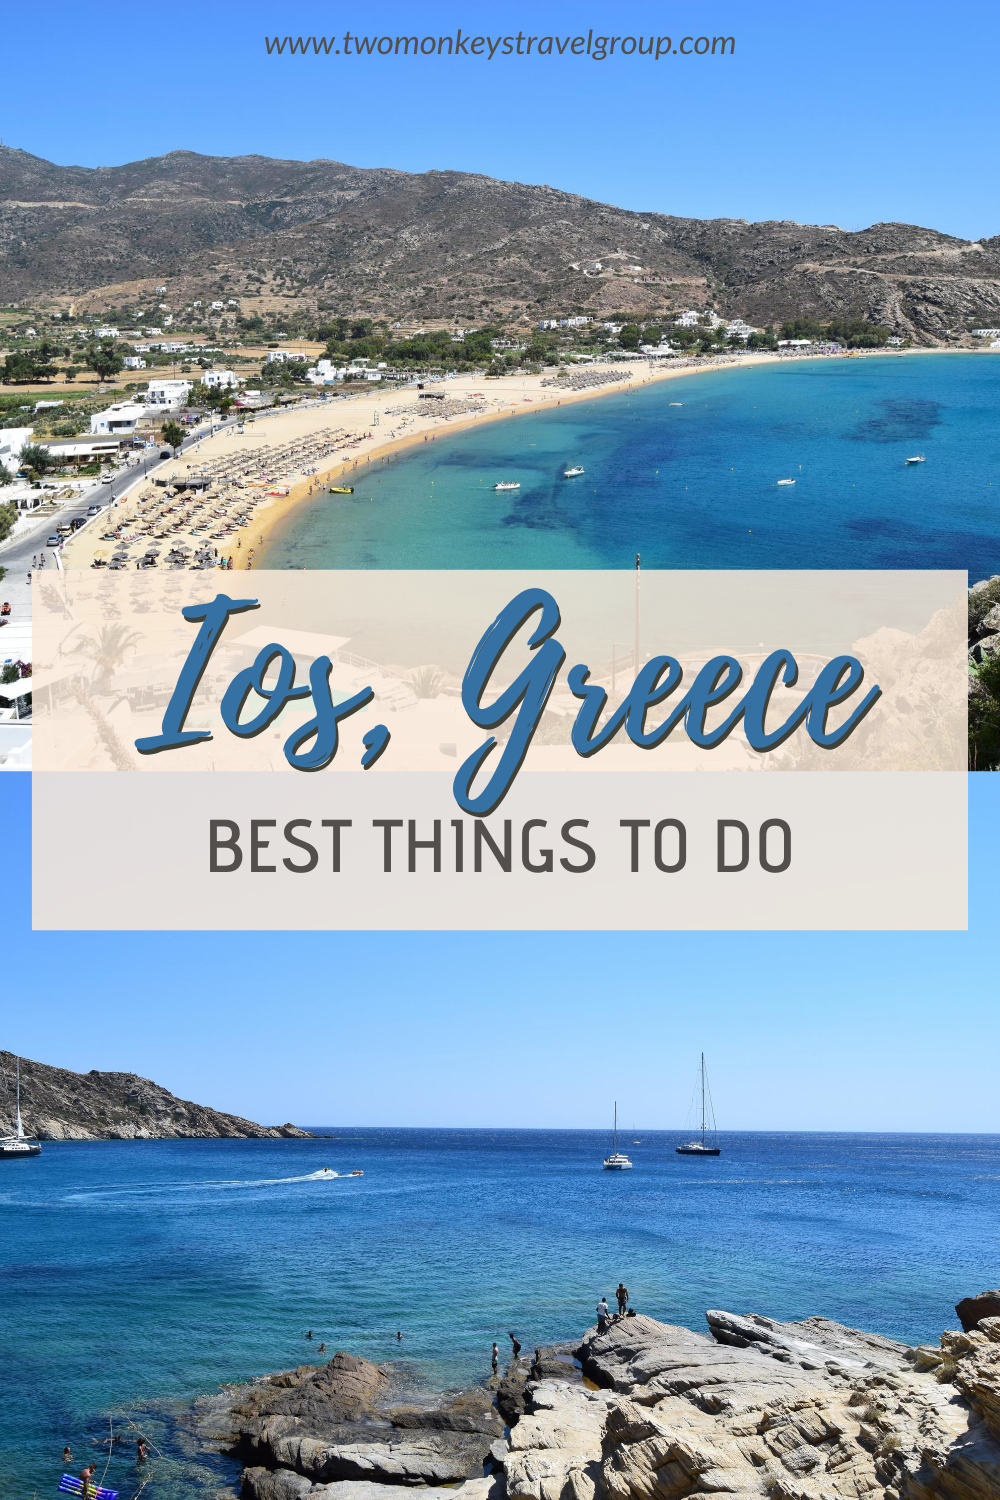 7 Best Things to do in Ios, Greece [with Suggested Tours]